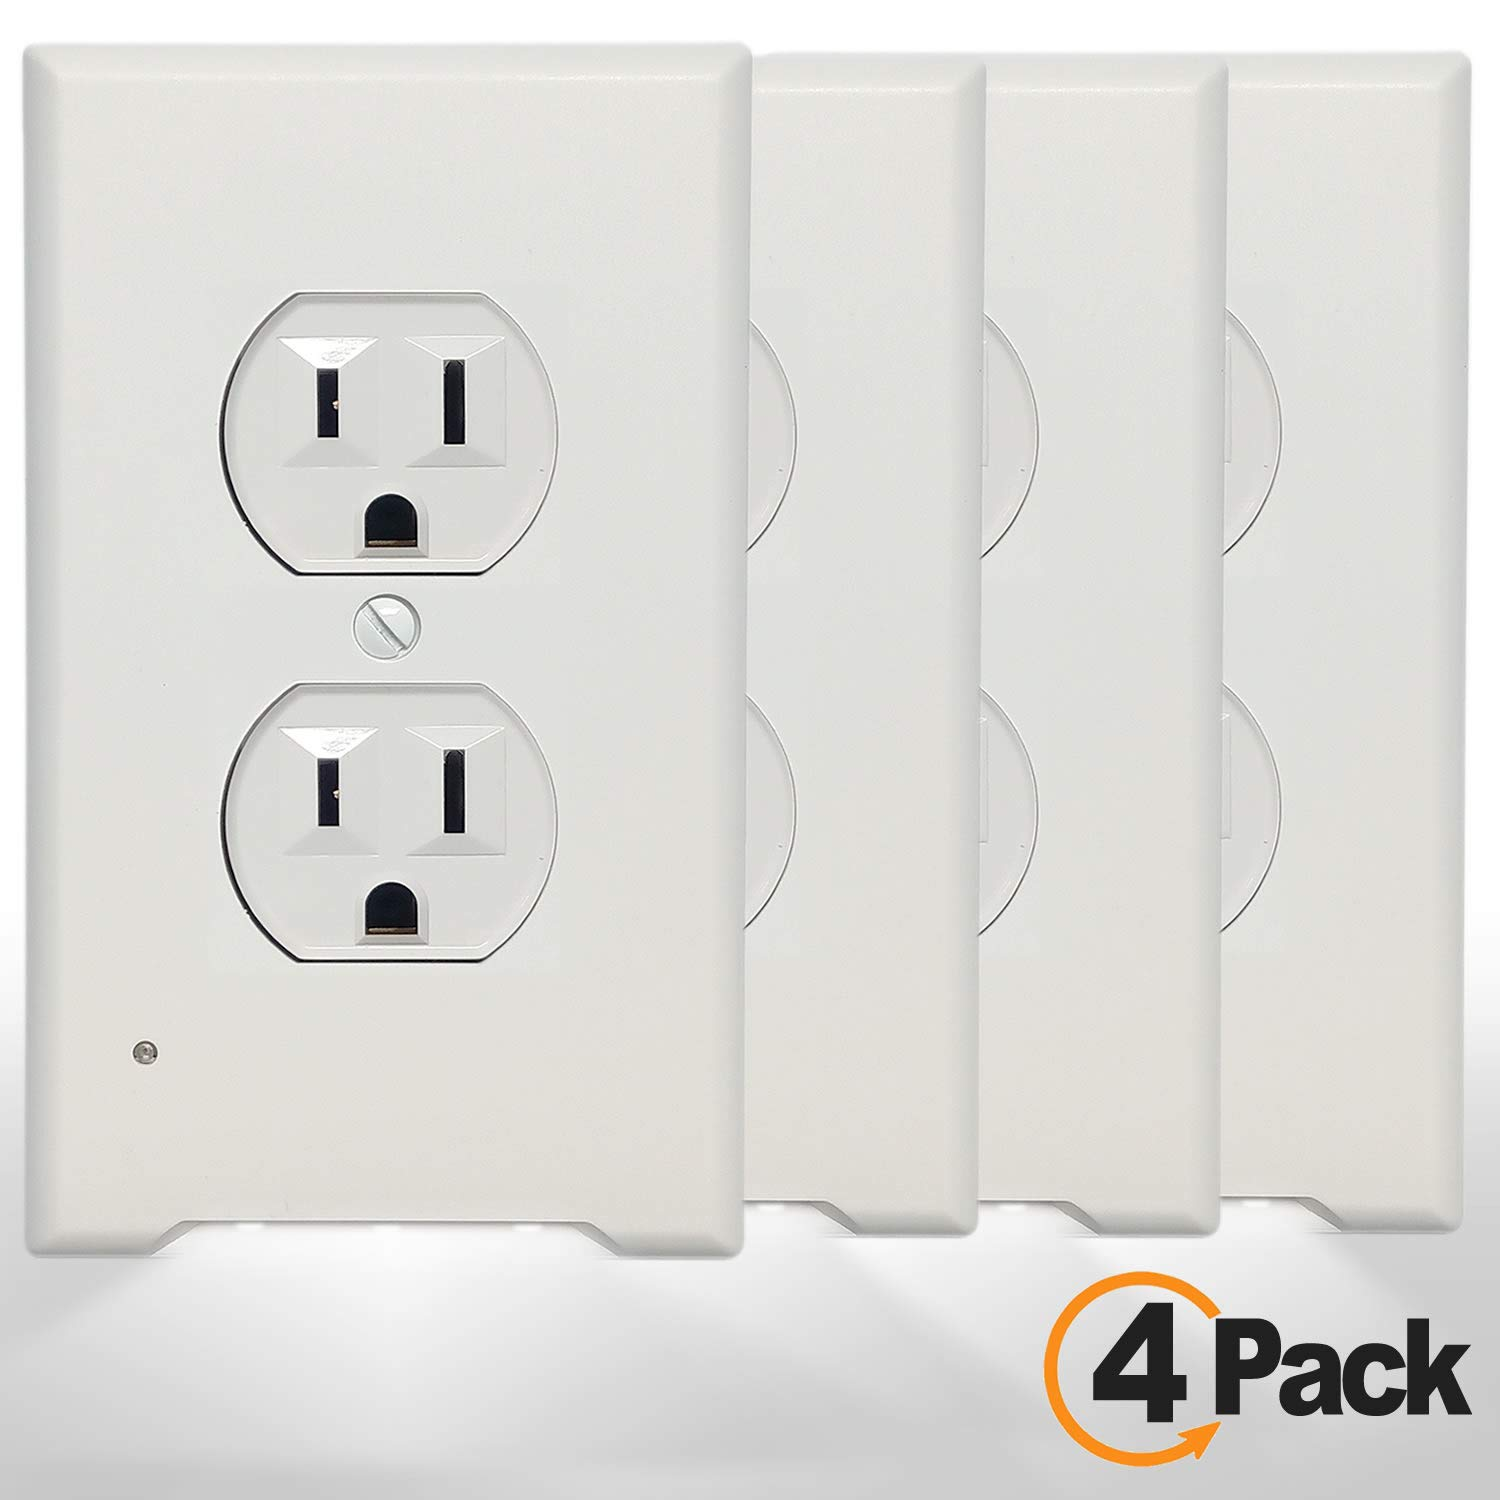 4Pack LED Night Light Outlet Cover Plate-No Wires Or Batteries,Light Sensor Auto-On LED Guidelight,Install In a Snap,Outlet Wall Plate With 0.3W High Brightness Night Light (White,Duplex)